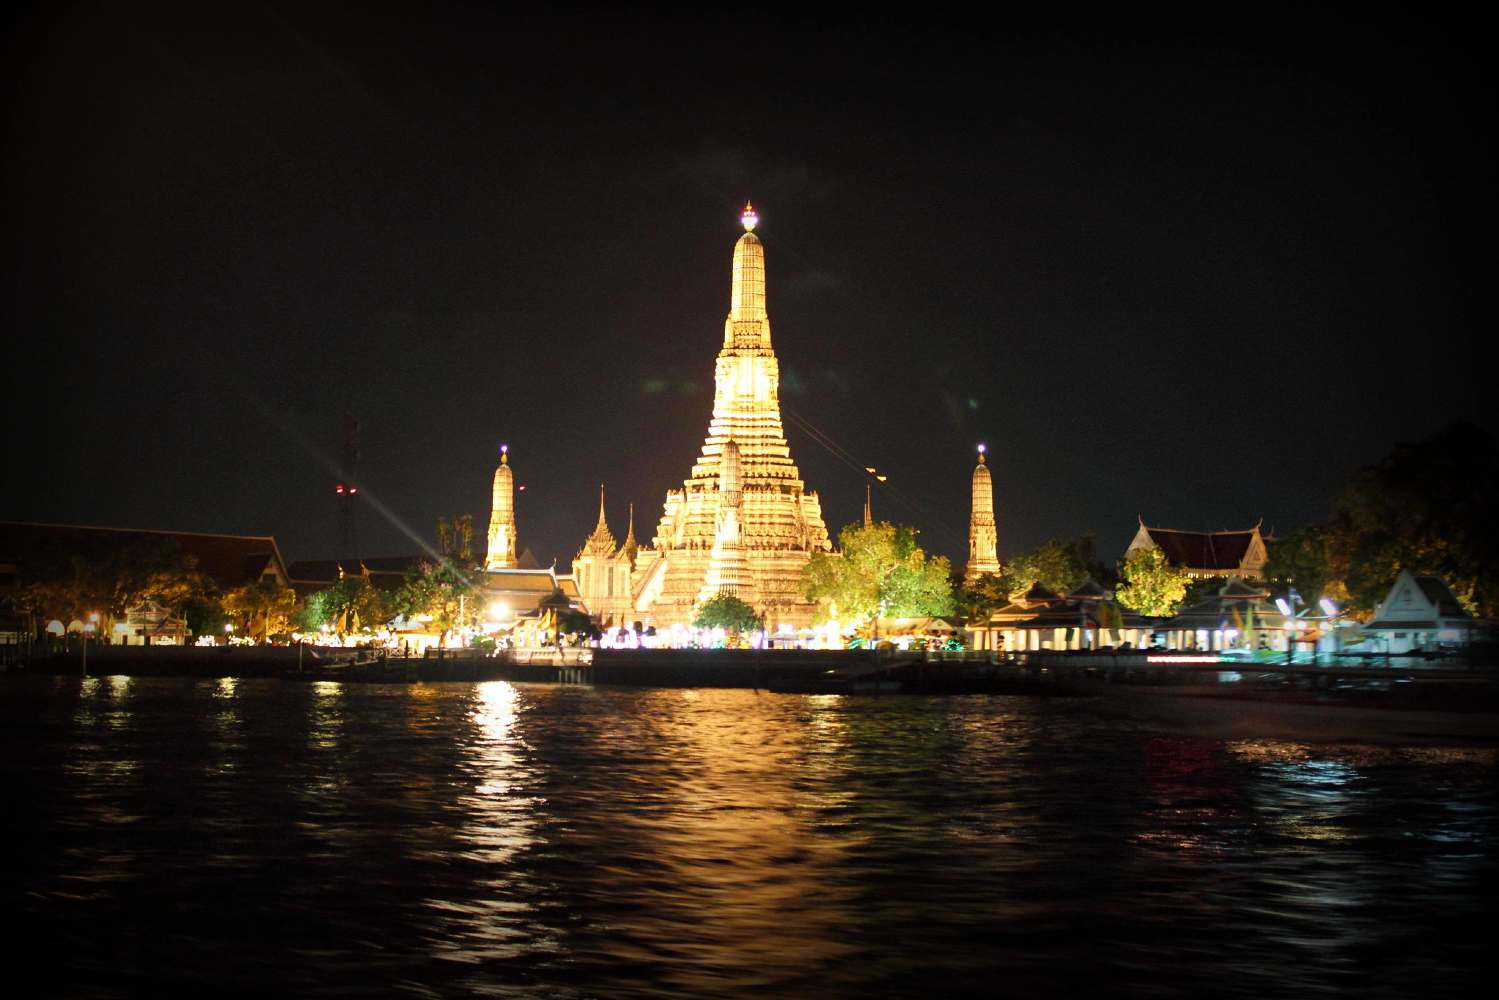 The Wat Arun illuminated at night